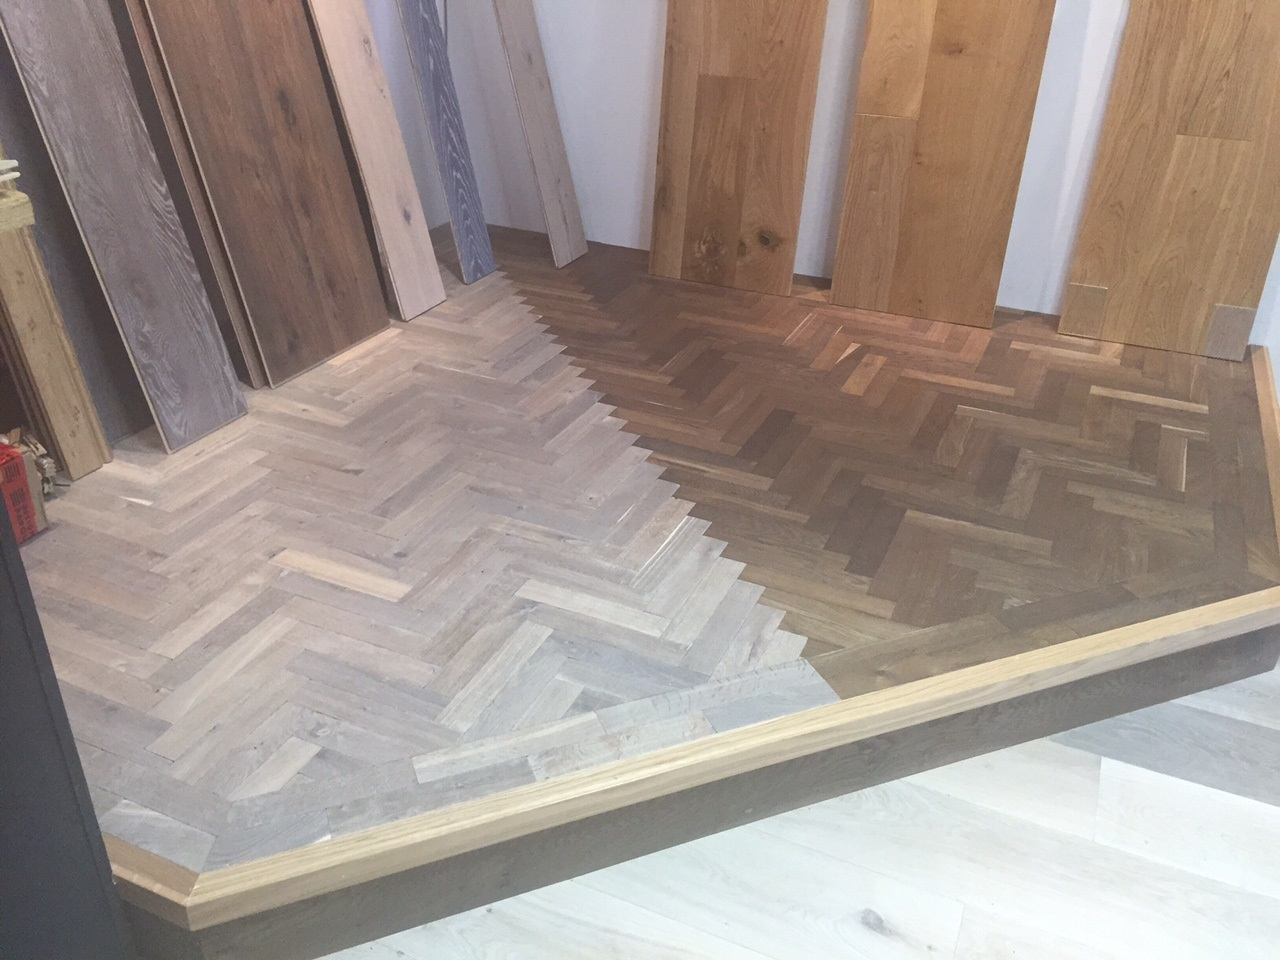 parquet_stained_and_oiled_floor_room_shot